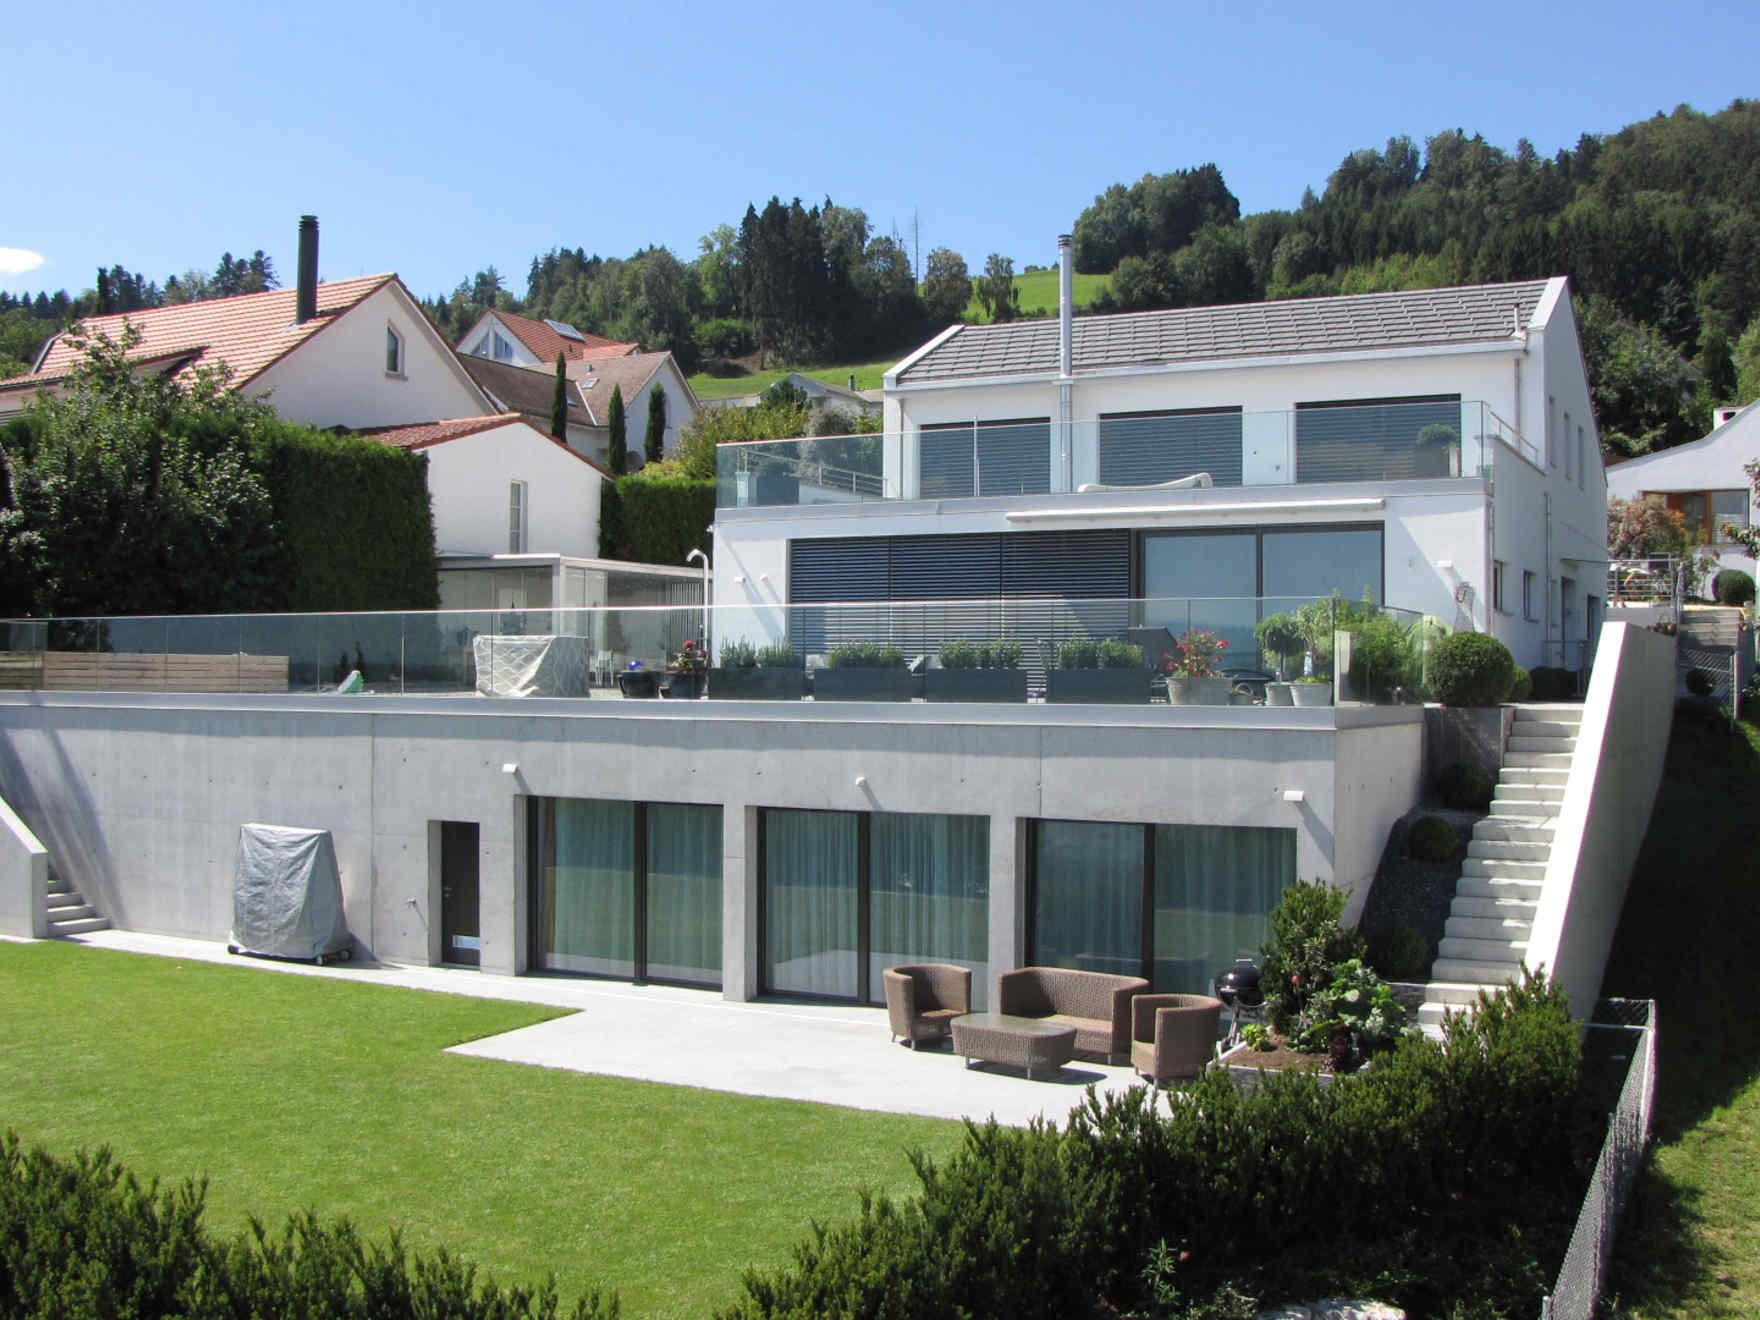 Vario haus architects villa white terraces for Architektur klassisch